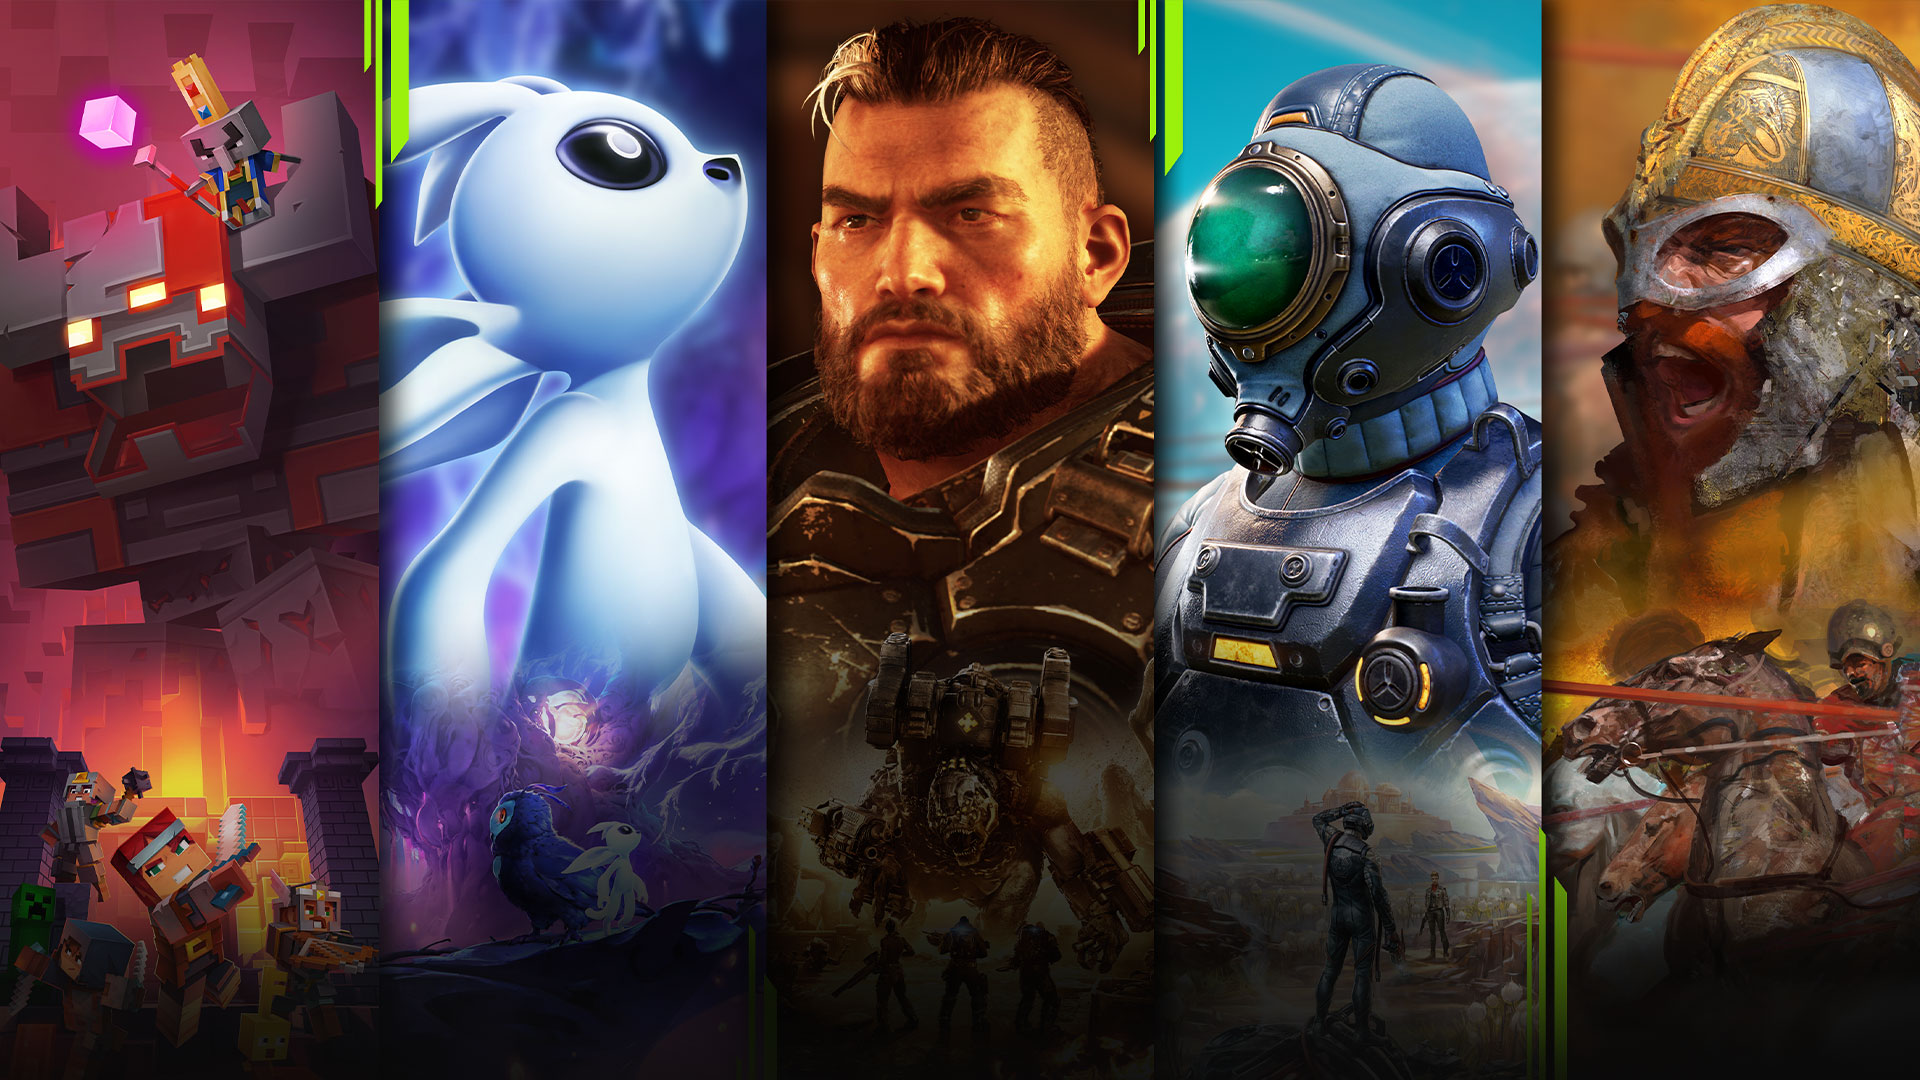 Game art from multiple games available with Xbox Game Pass for PC including Minecraft Dungeons, Ori and the Will of the Wisps, Gears Tactics, The Outer Worlds, and Age of Empires 2: Definitive Edition.